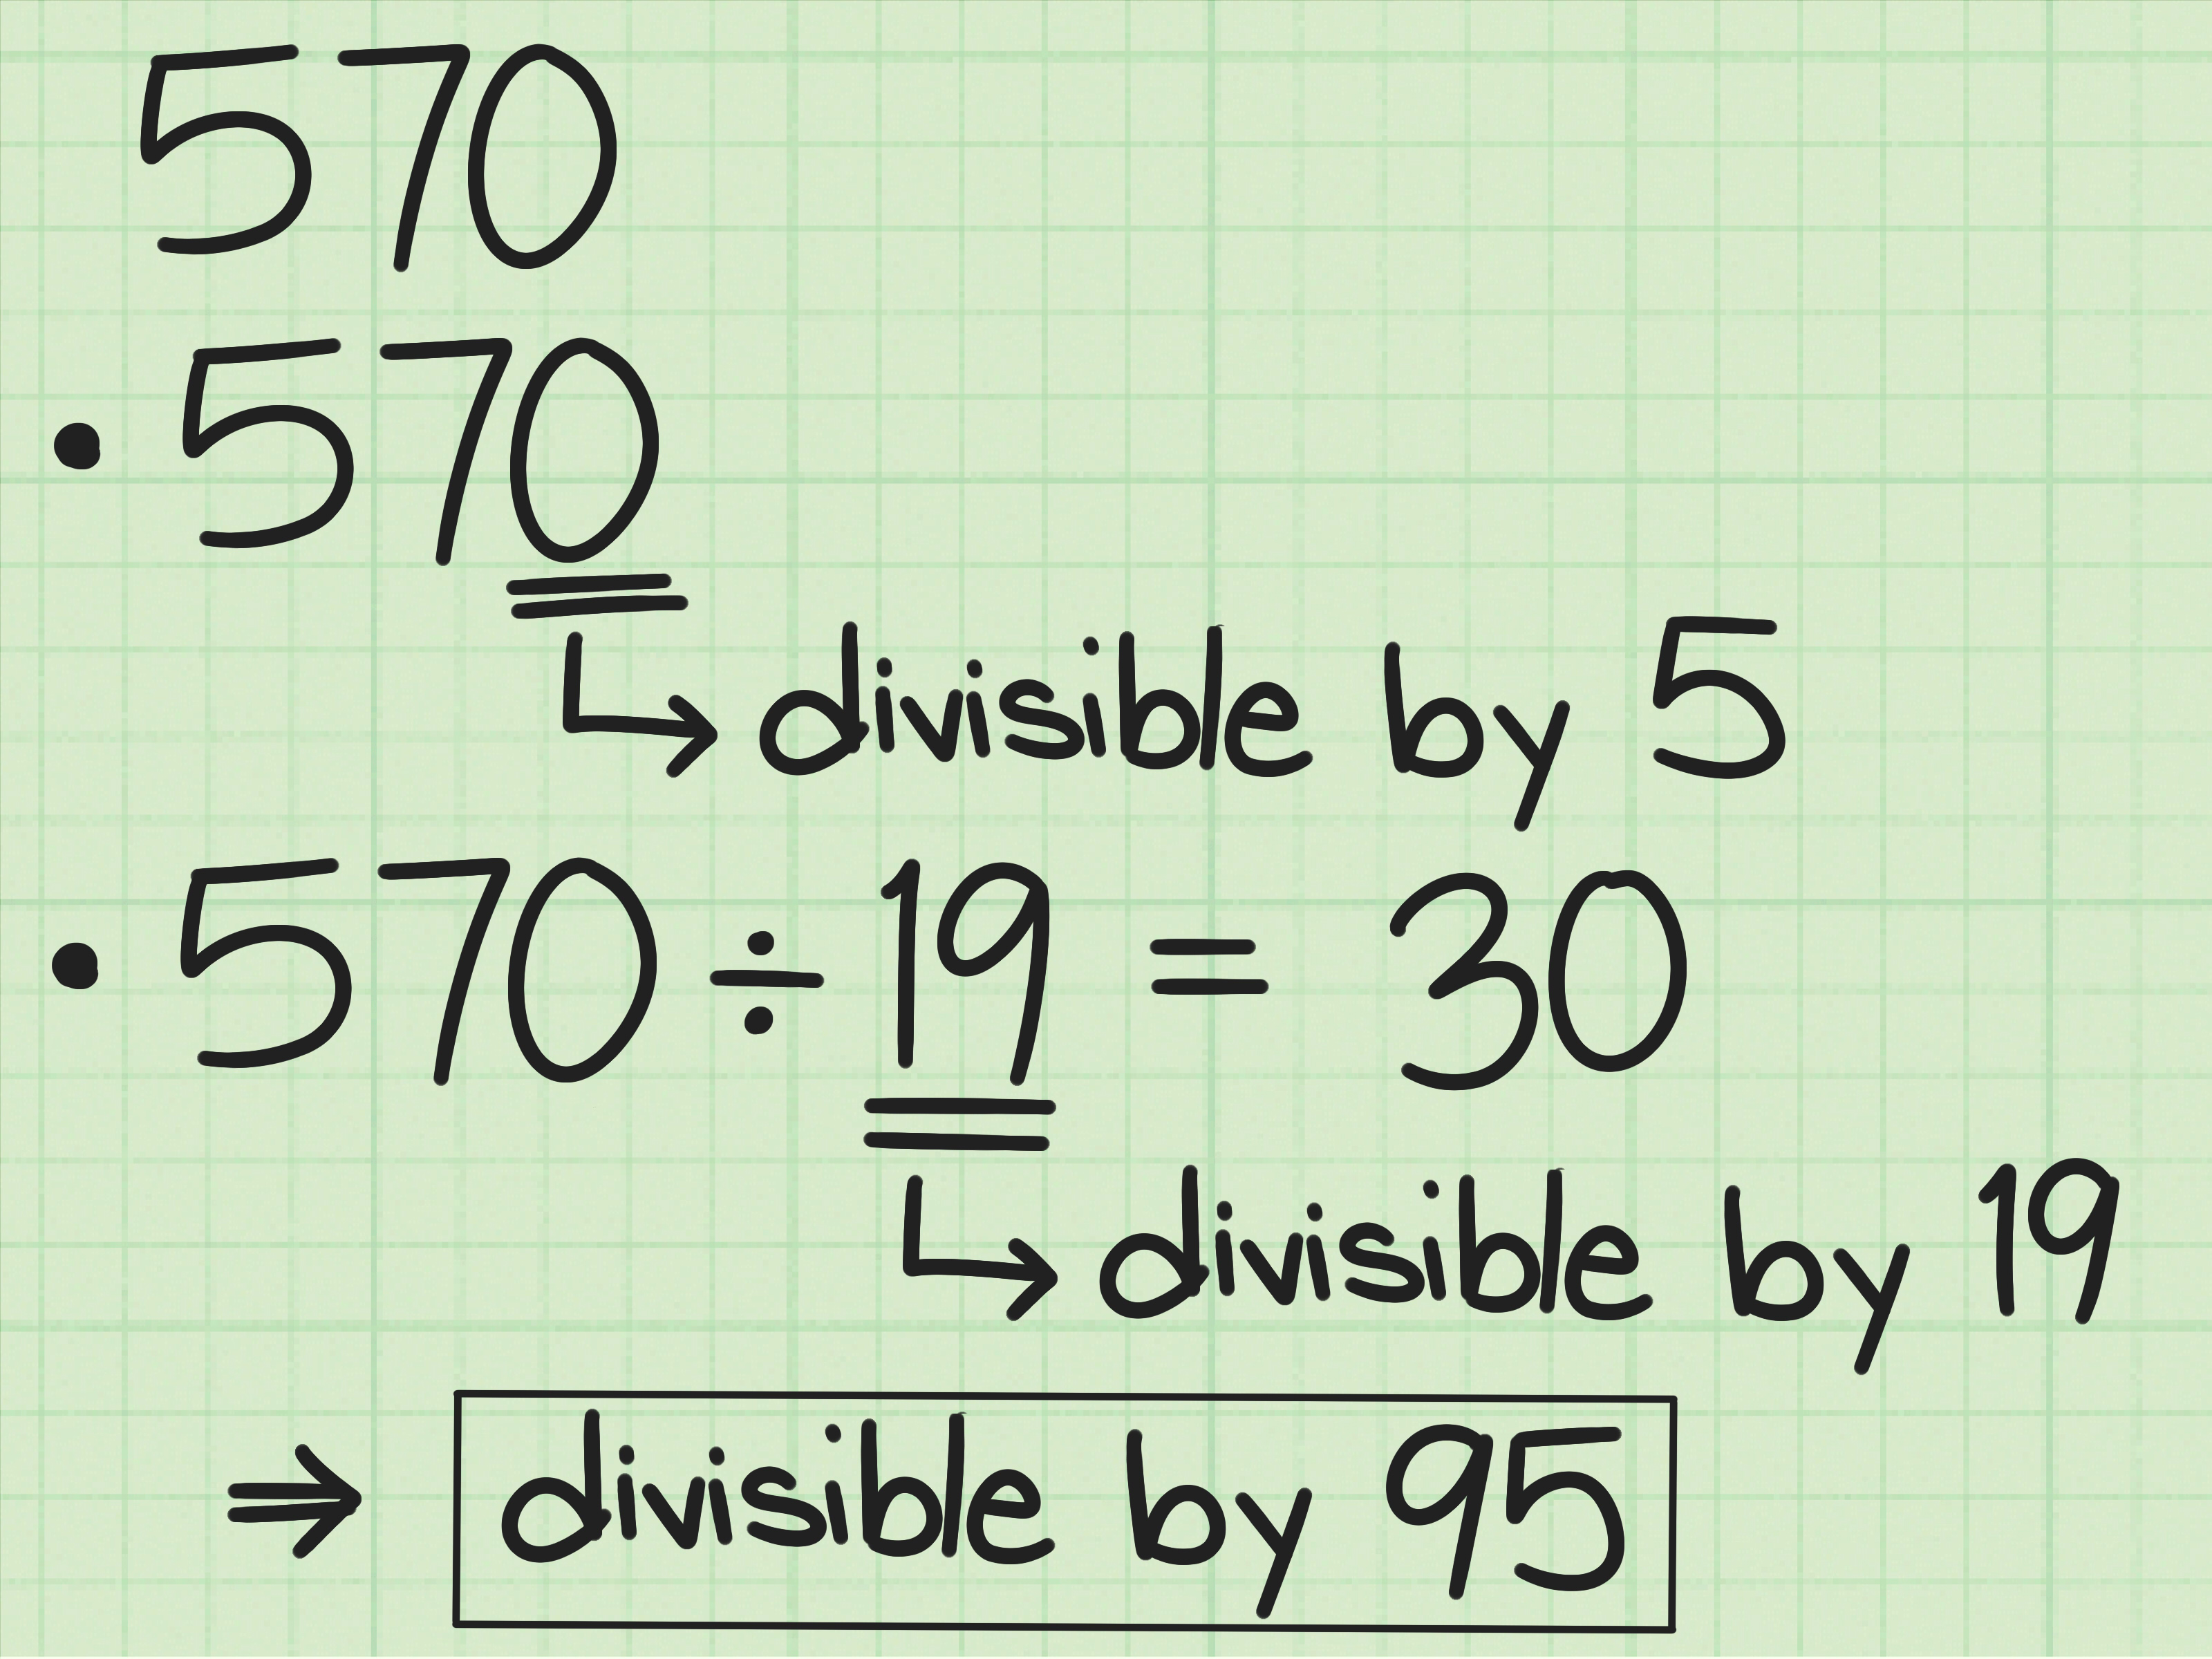 4 Ways To Check Divisibility By Two Digit Multiples Of 5